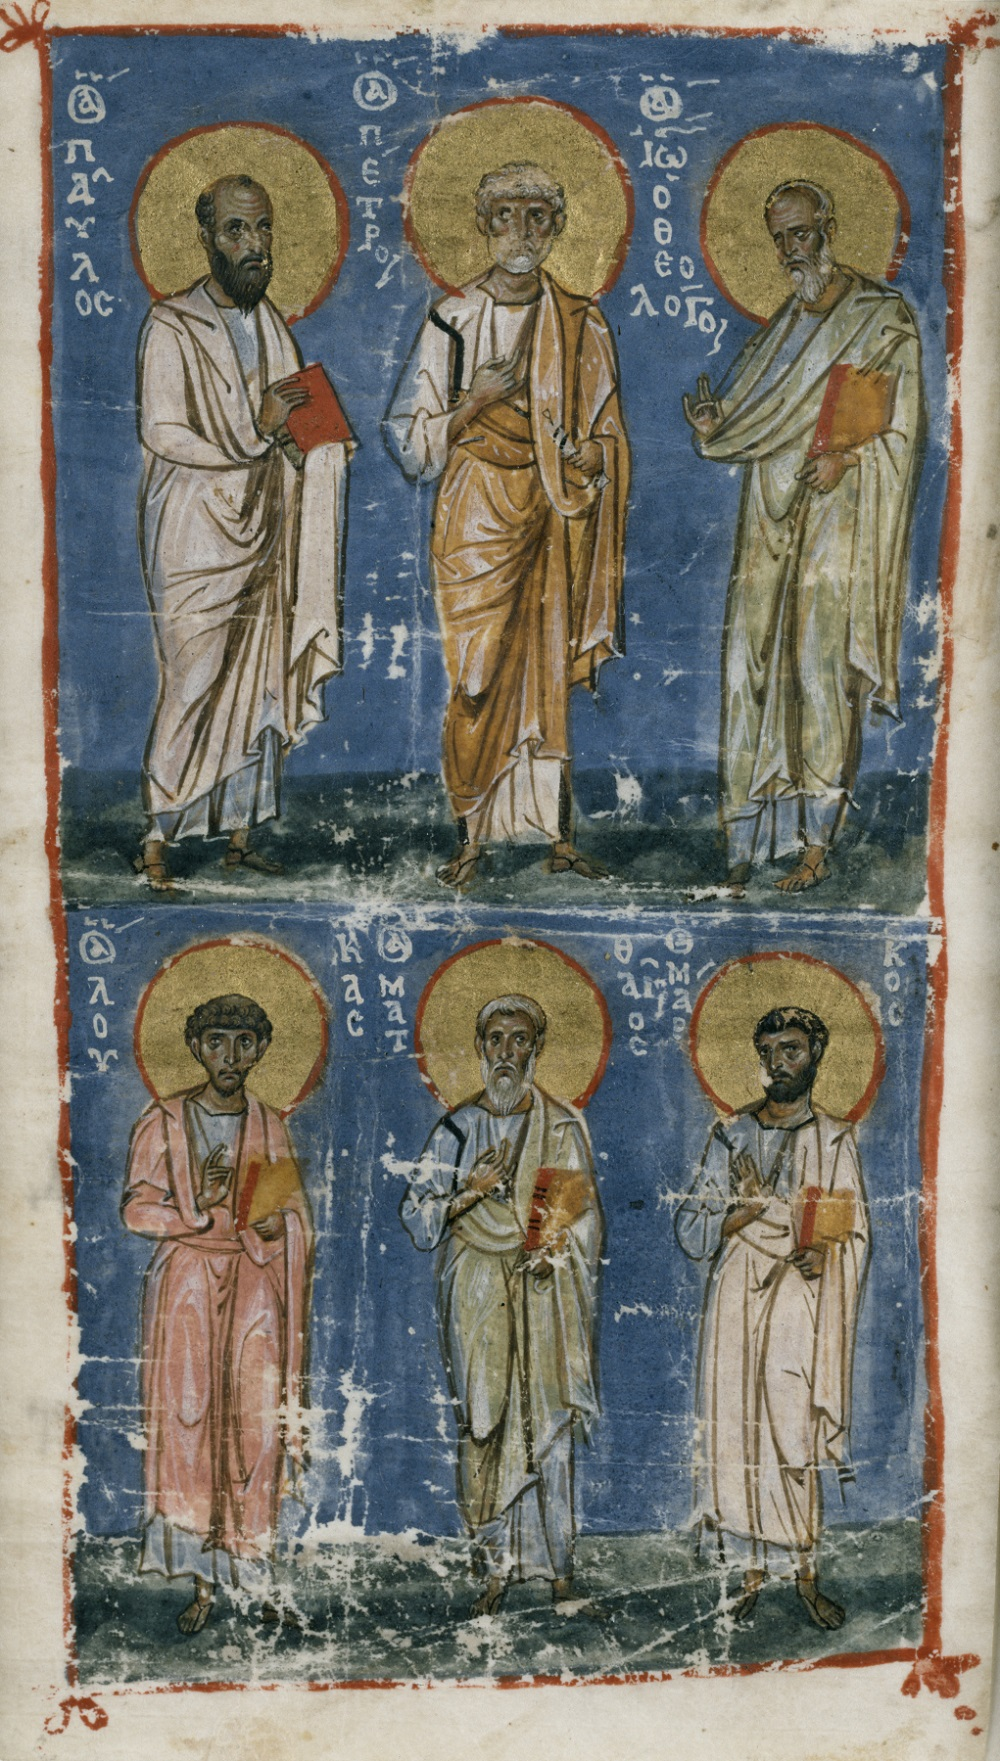 Painted Miniature, with Paul, Peter, and the Evangelists   Tempera on Parchment, Byzantine Empire (ca.1070-1100)    Image Source